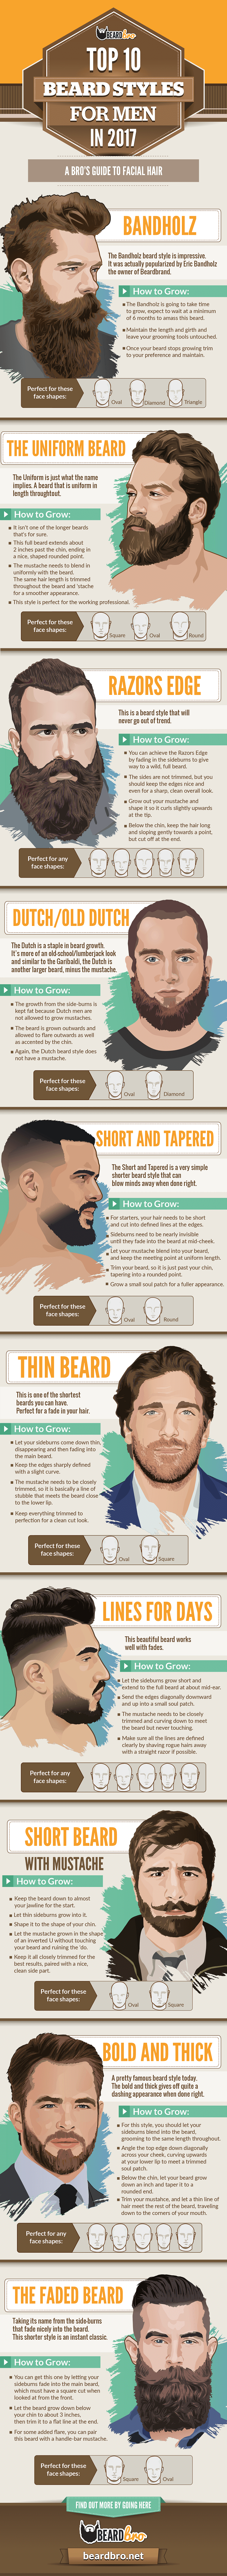 BeardLife Beard Care And Maintenance Simplified Tame That Shit - Guy shapes beard fun creative designs